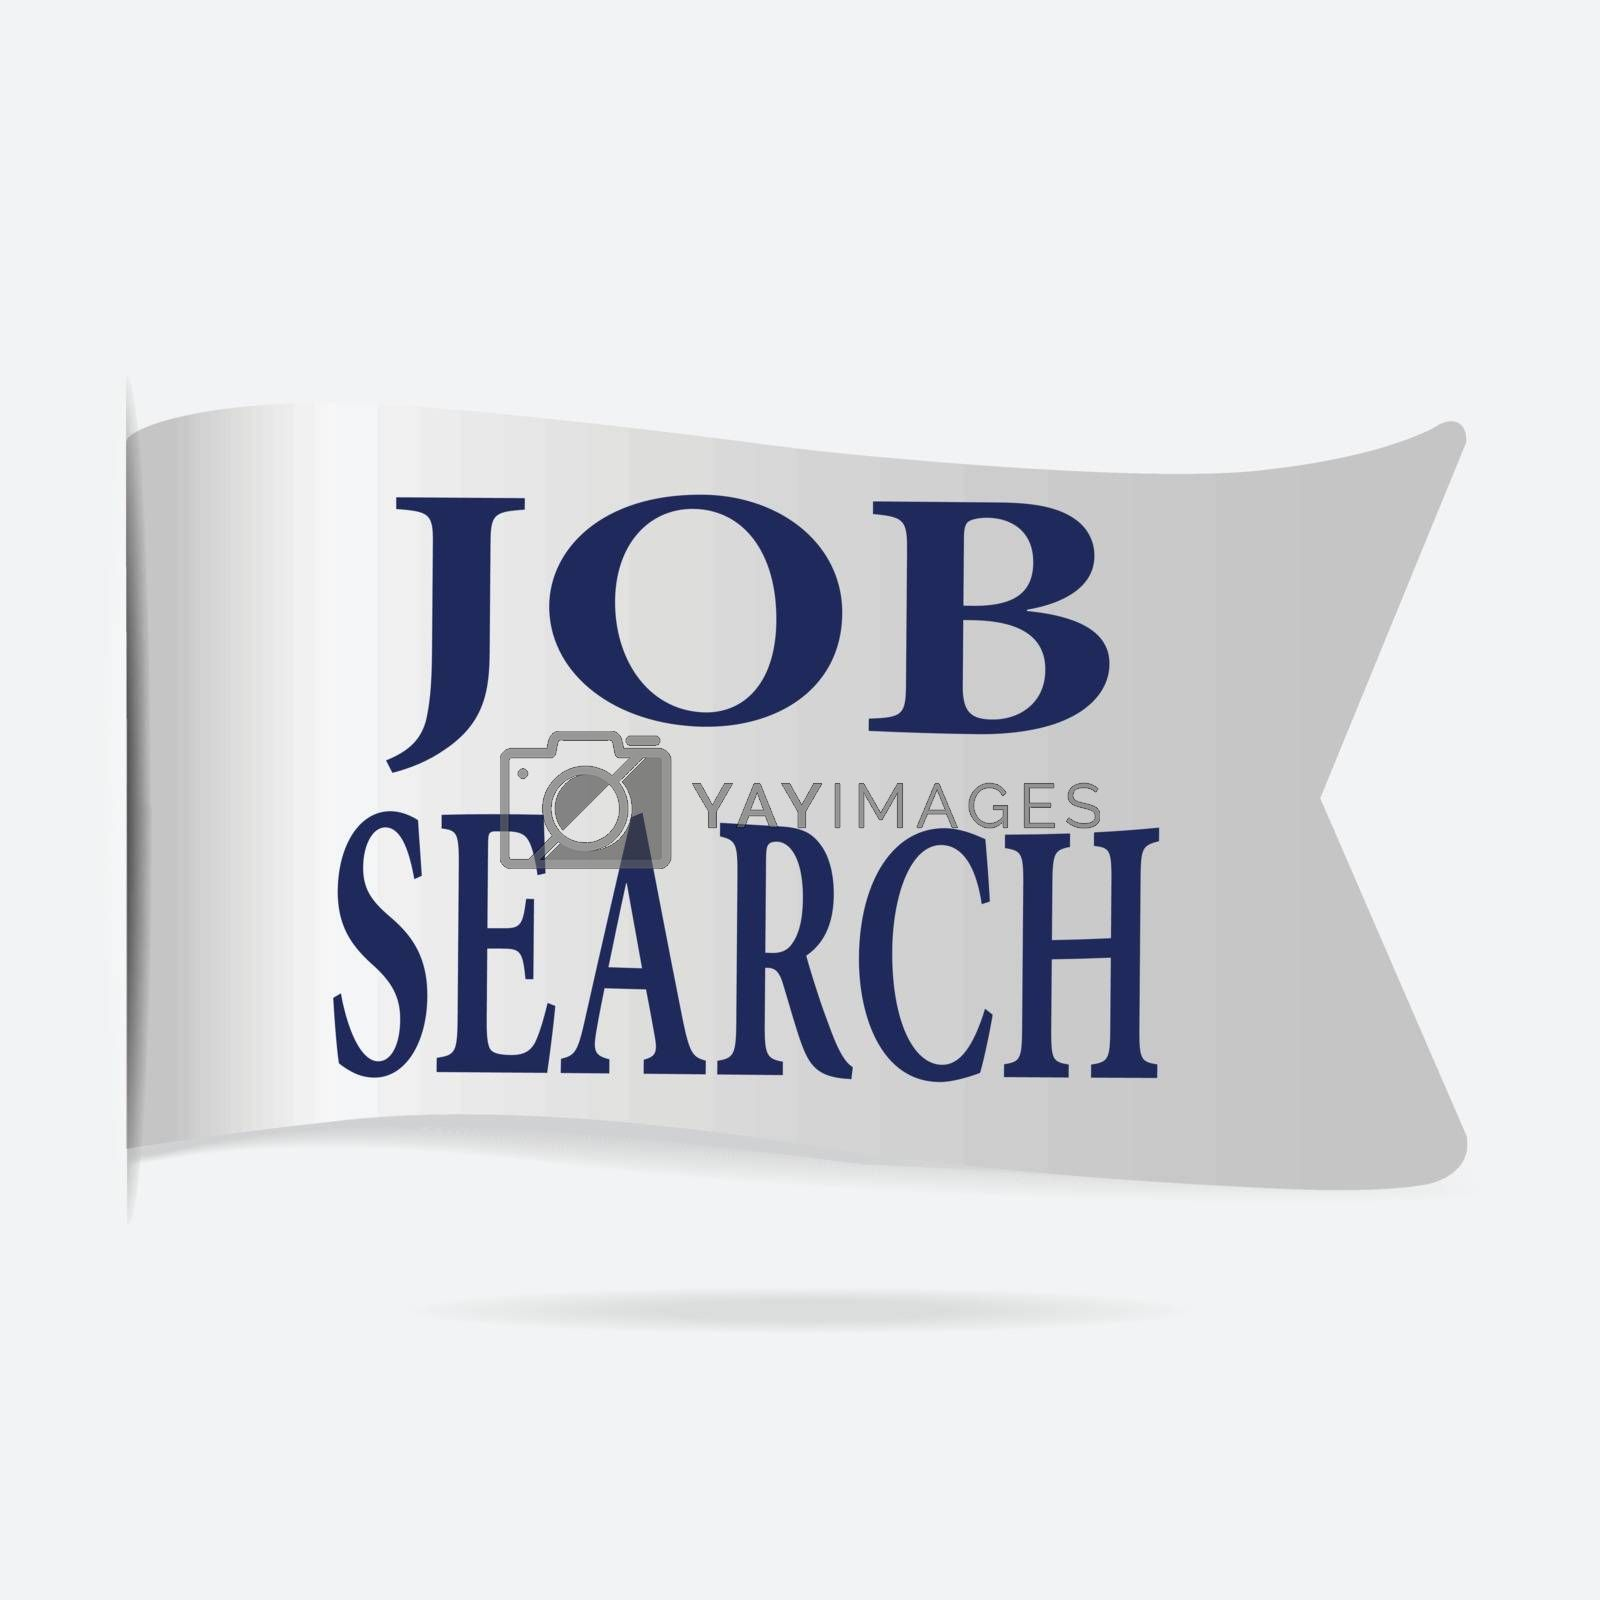 Job search label, silver ribbon badge illustration